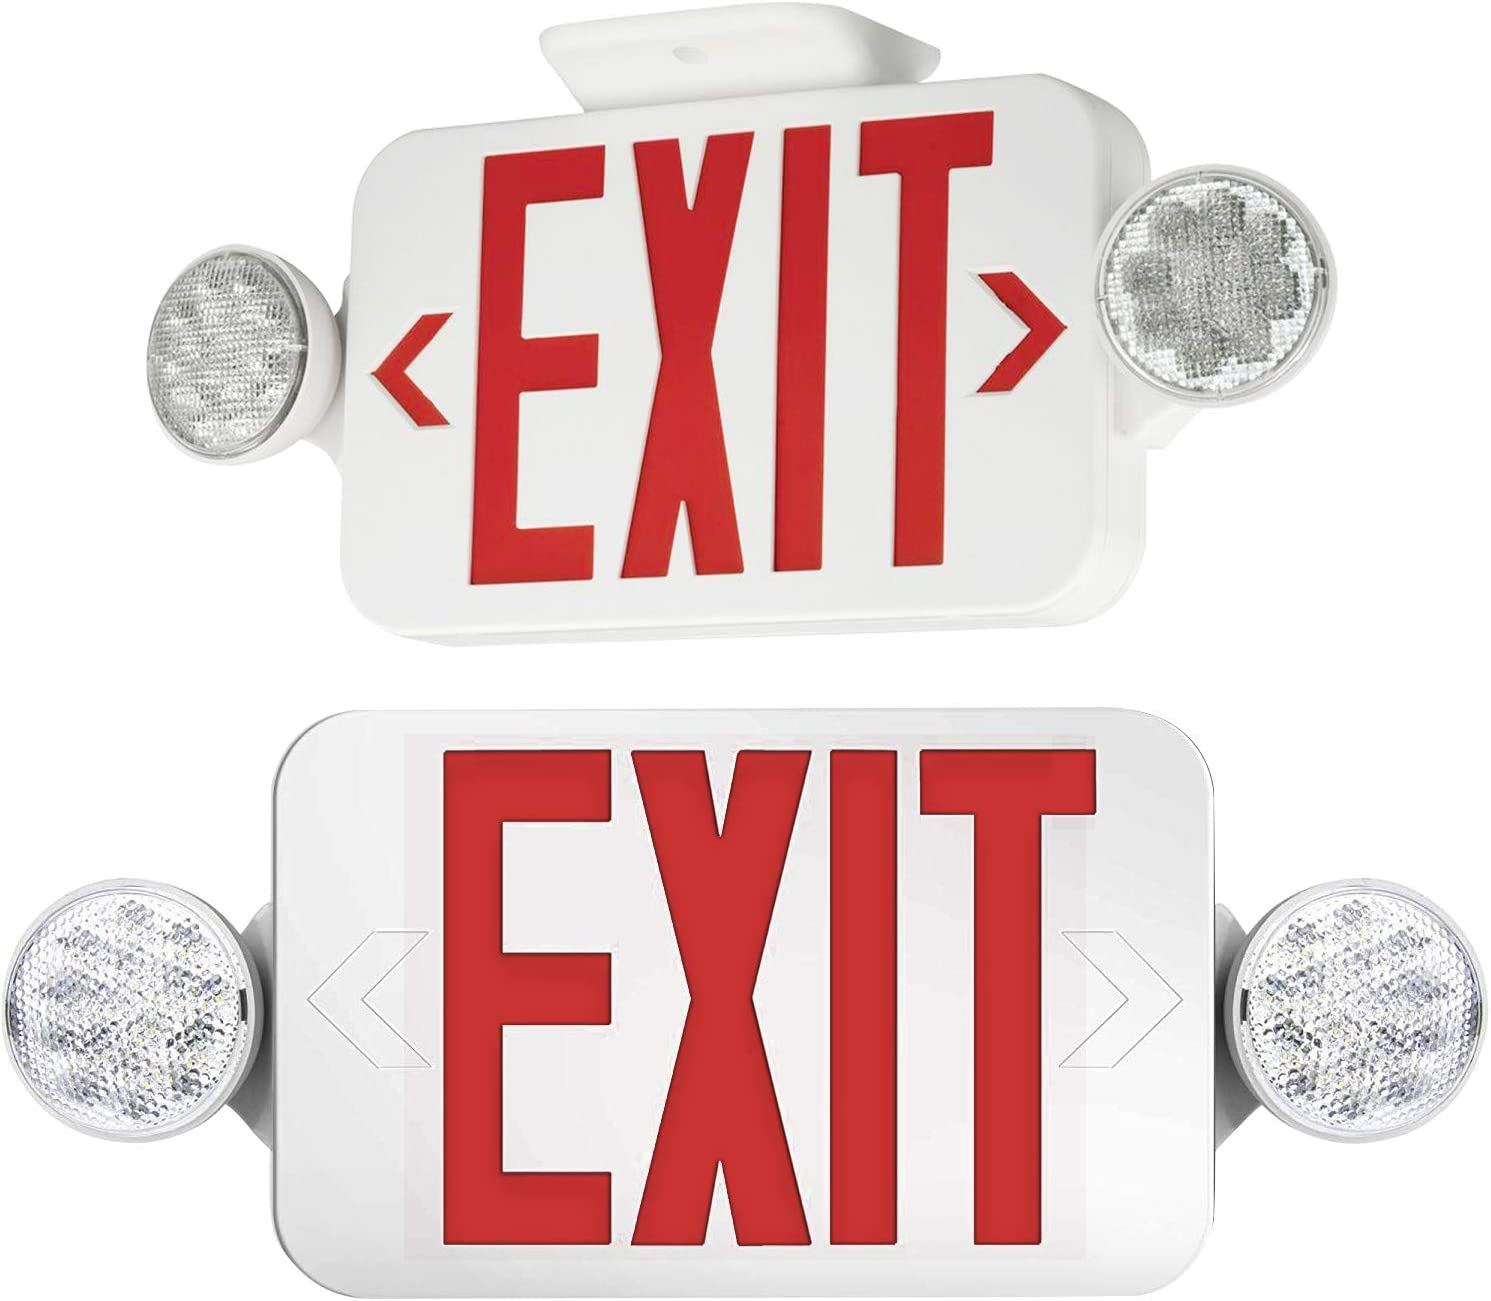 【2 Pack】Ul Certified Exit Sign mit Emergency Light rot Exit Compact Combo Hardwired hoch Output